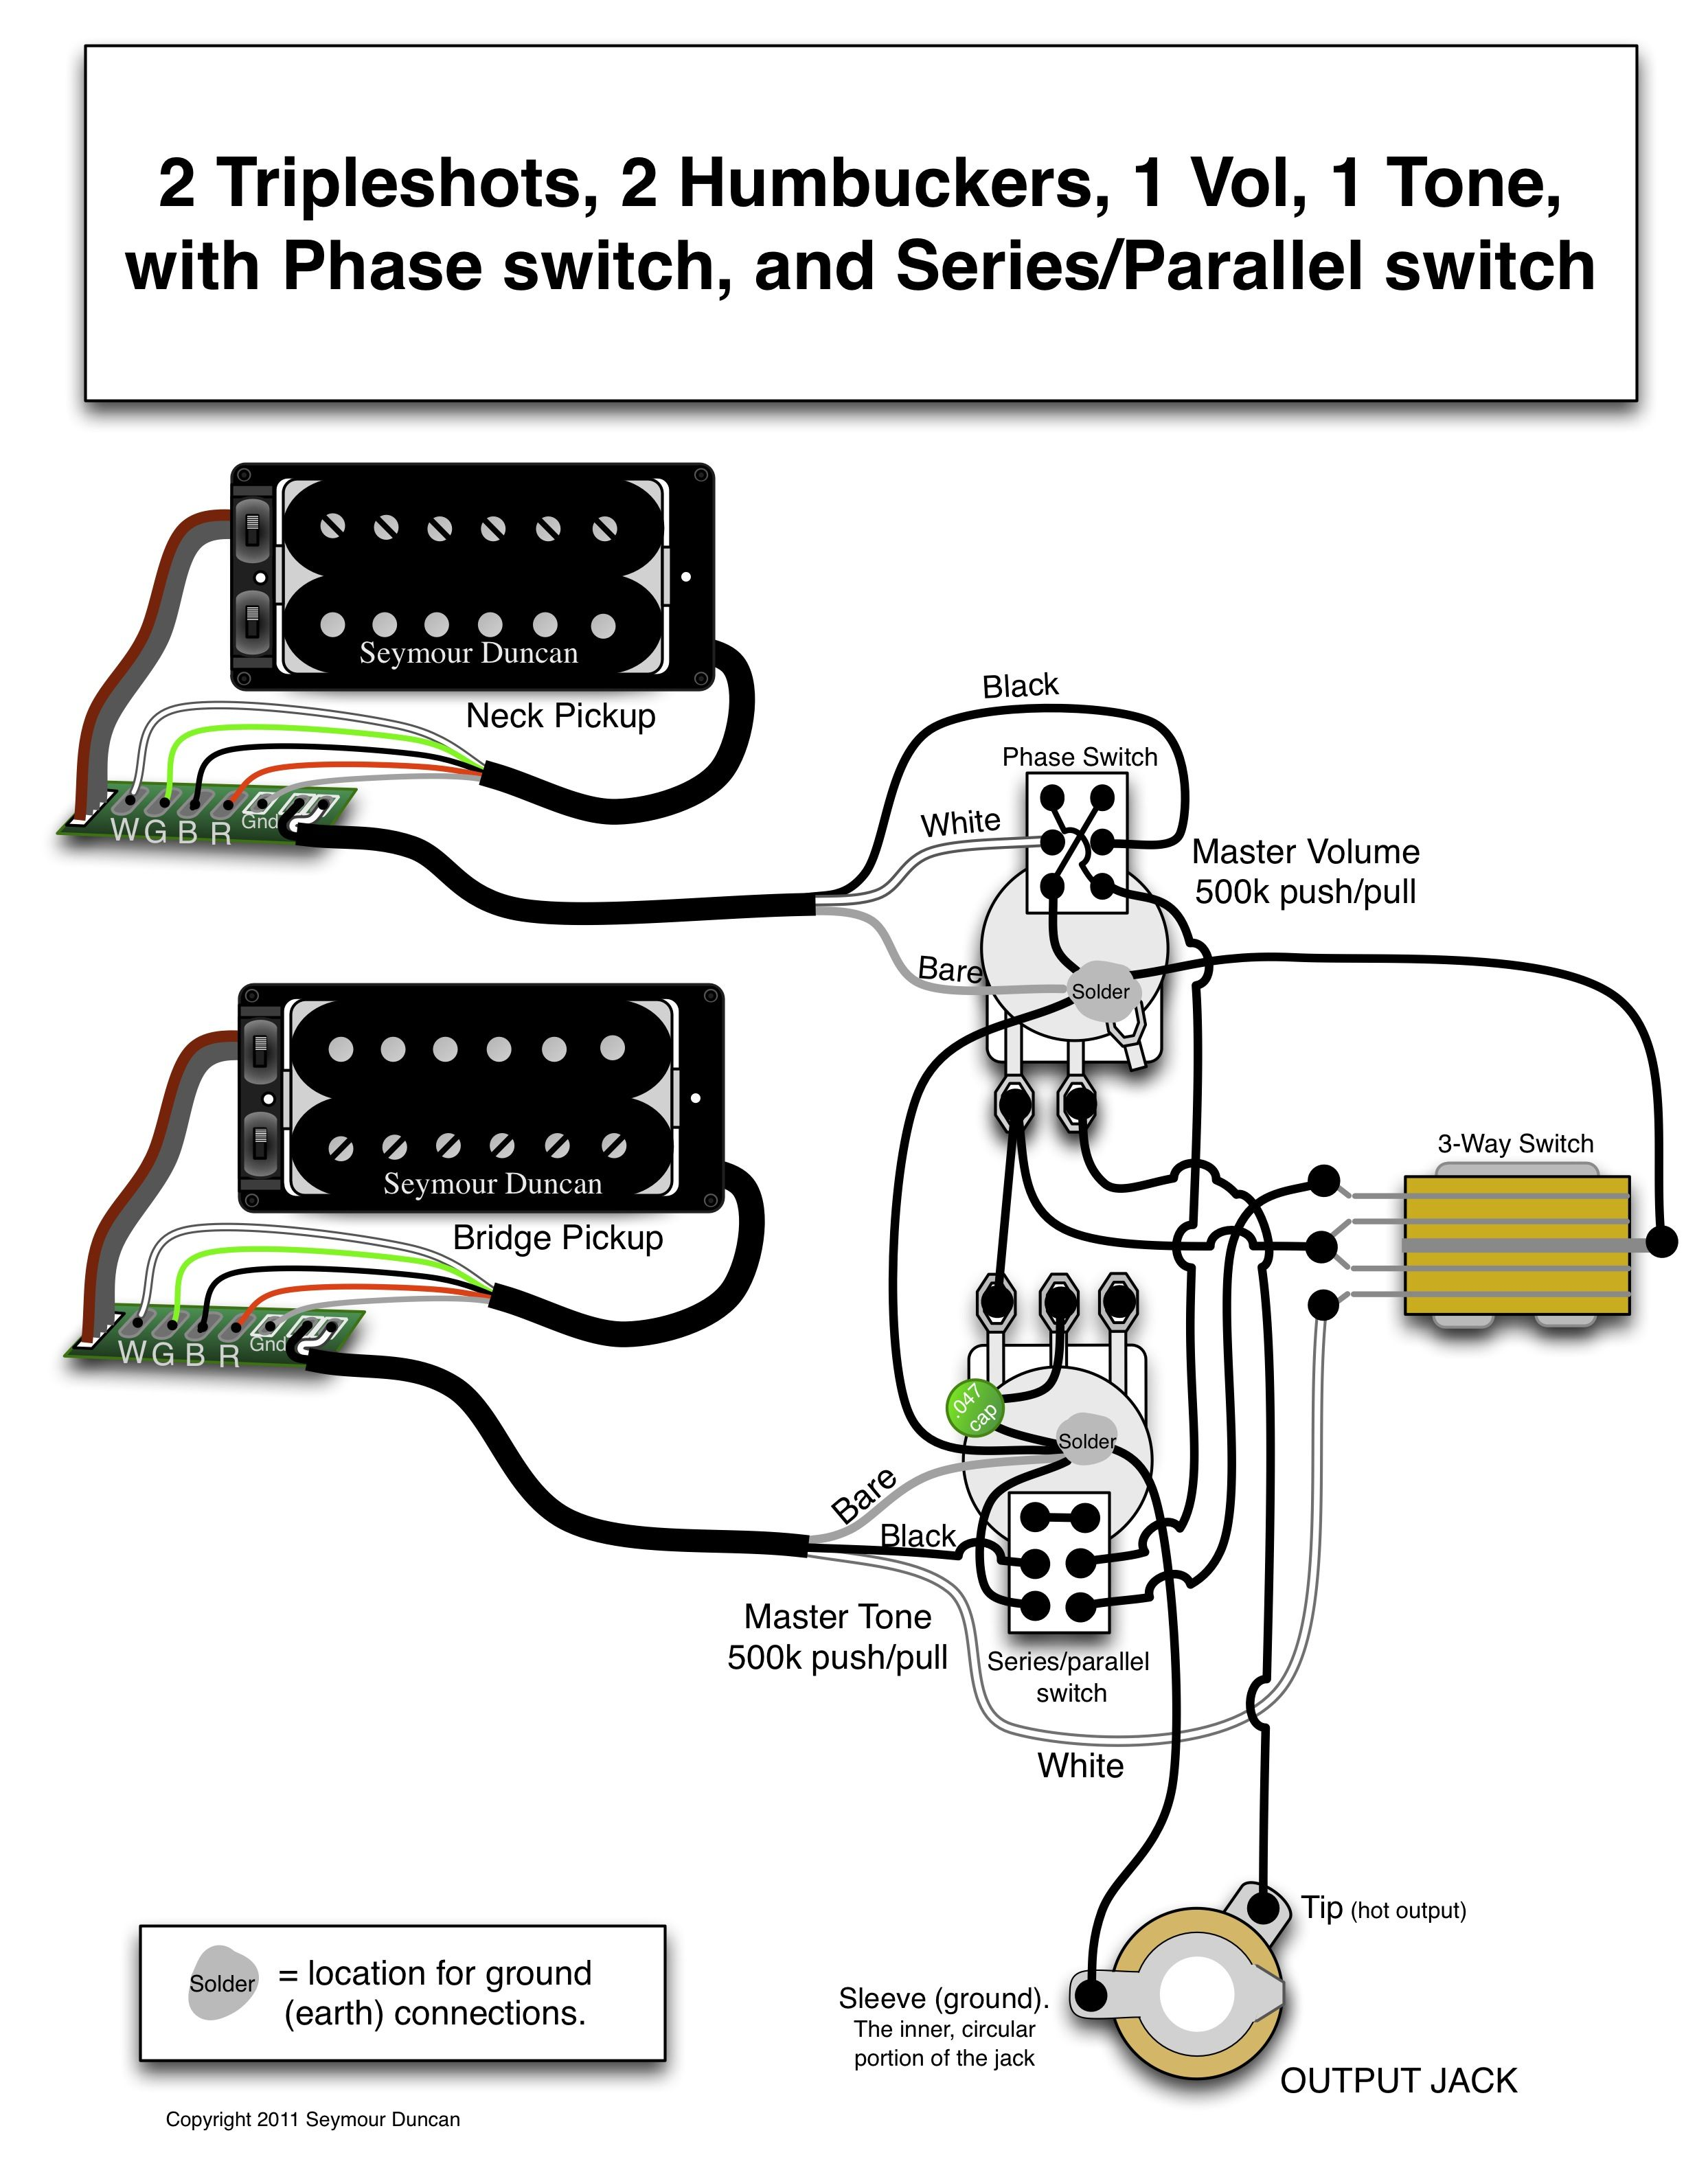 Hsh Wiring With Auto Split Inside Coils Using A Dpdt Mini Toggle Single Pickup Diagram Switch 1 Volume Tone By Brian Calloway Guitar Tech In 2019